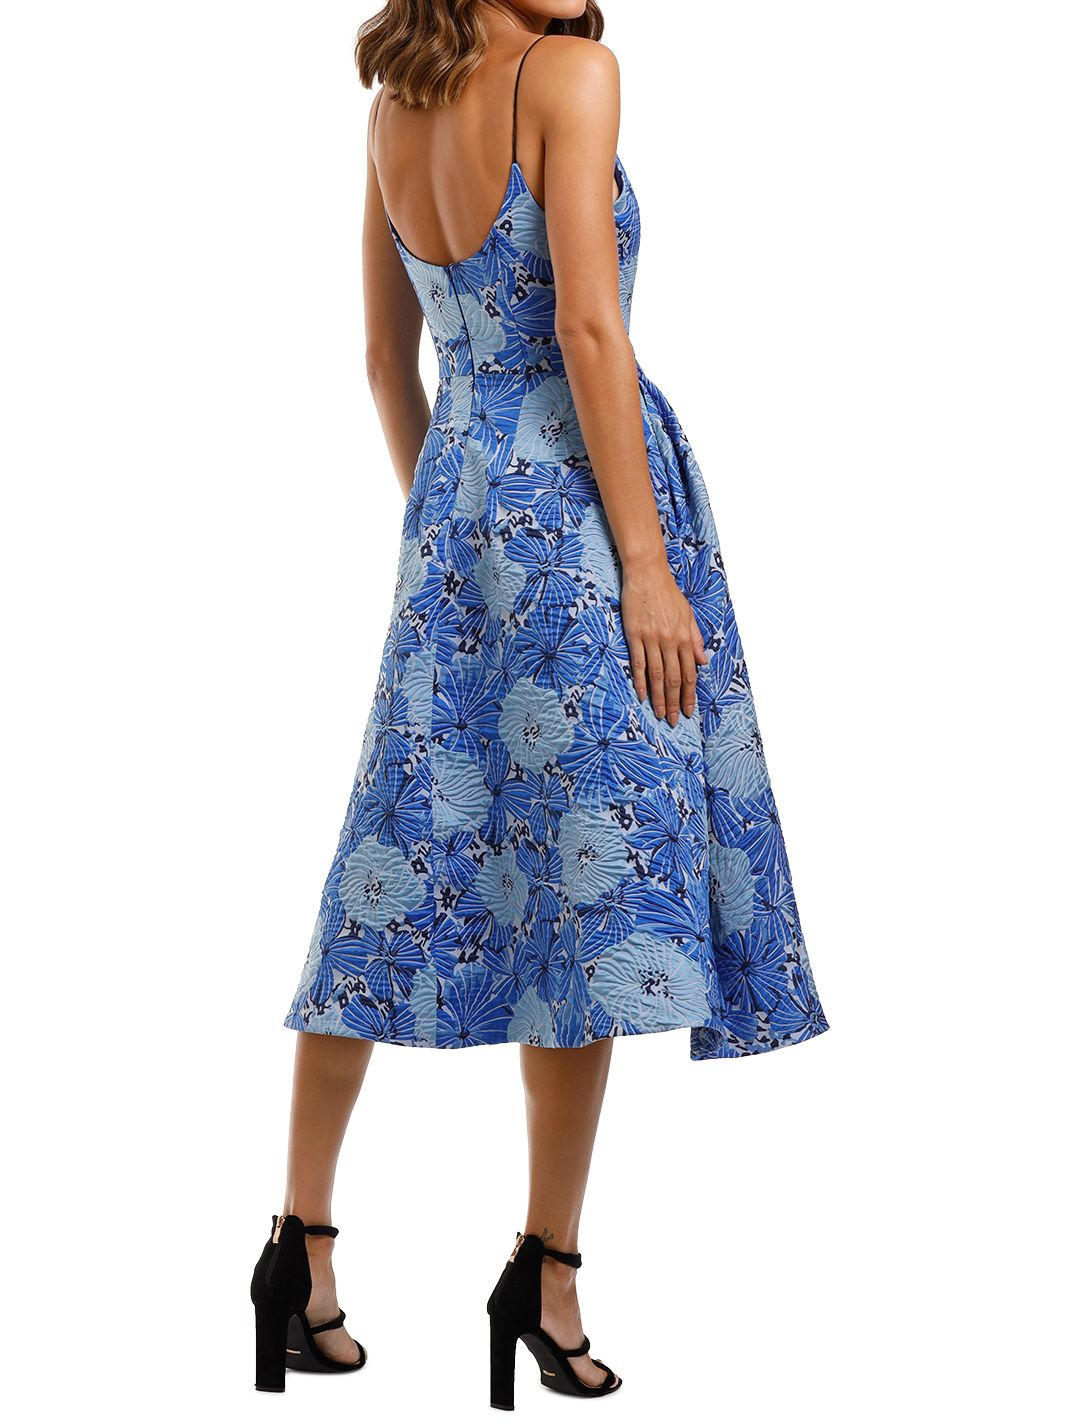 Love Honor Alexia Midi Cobalt Fit and Flare